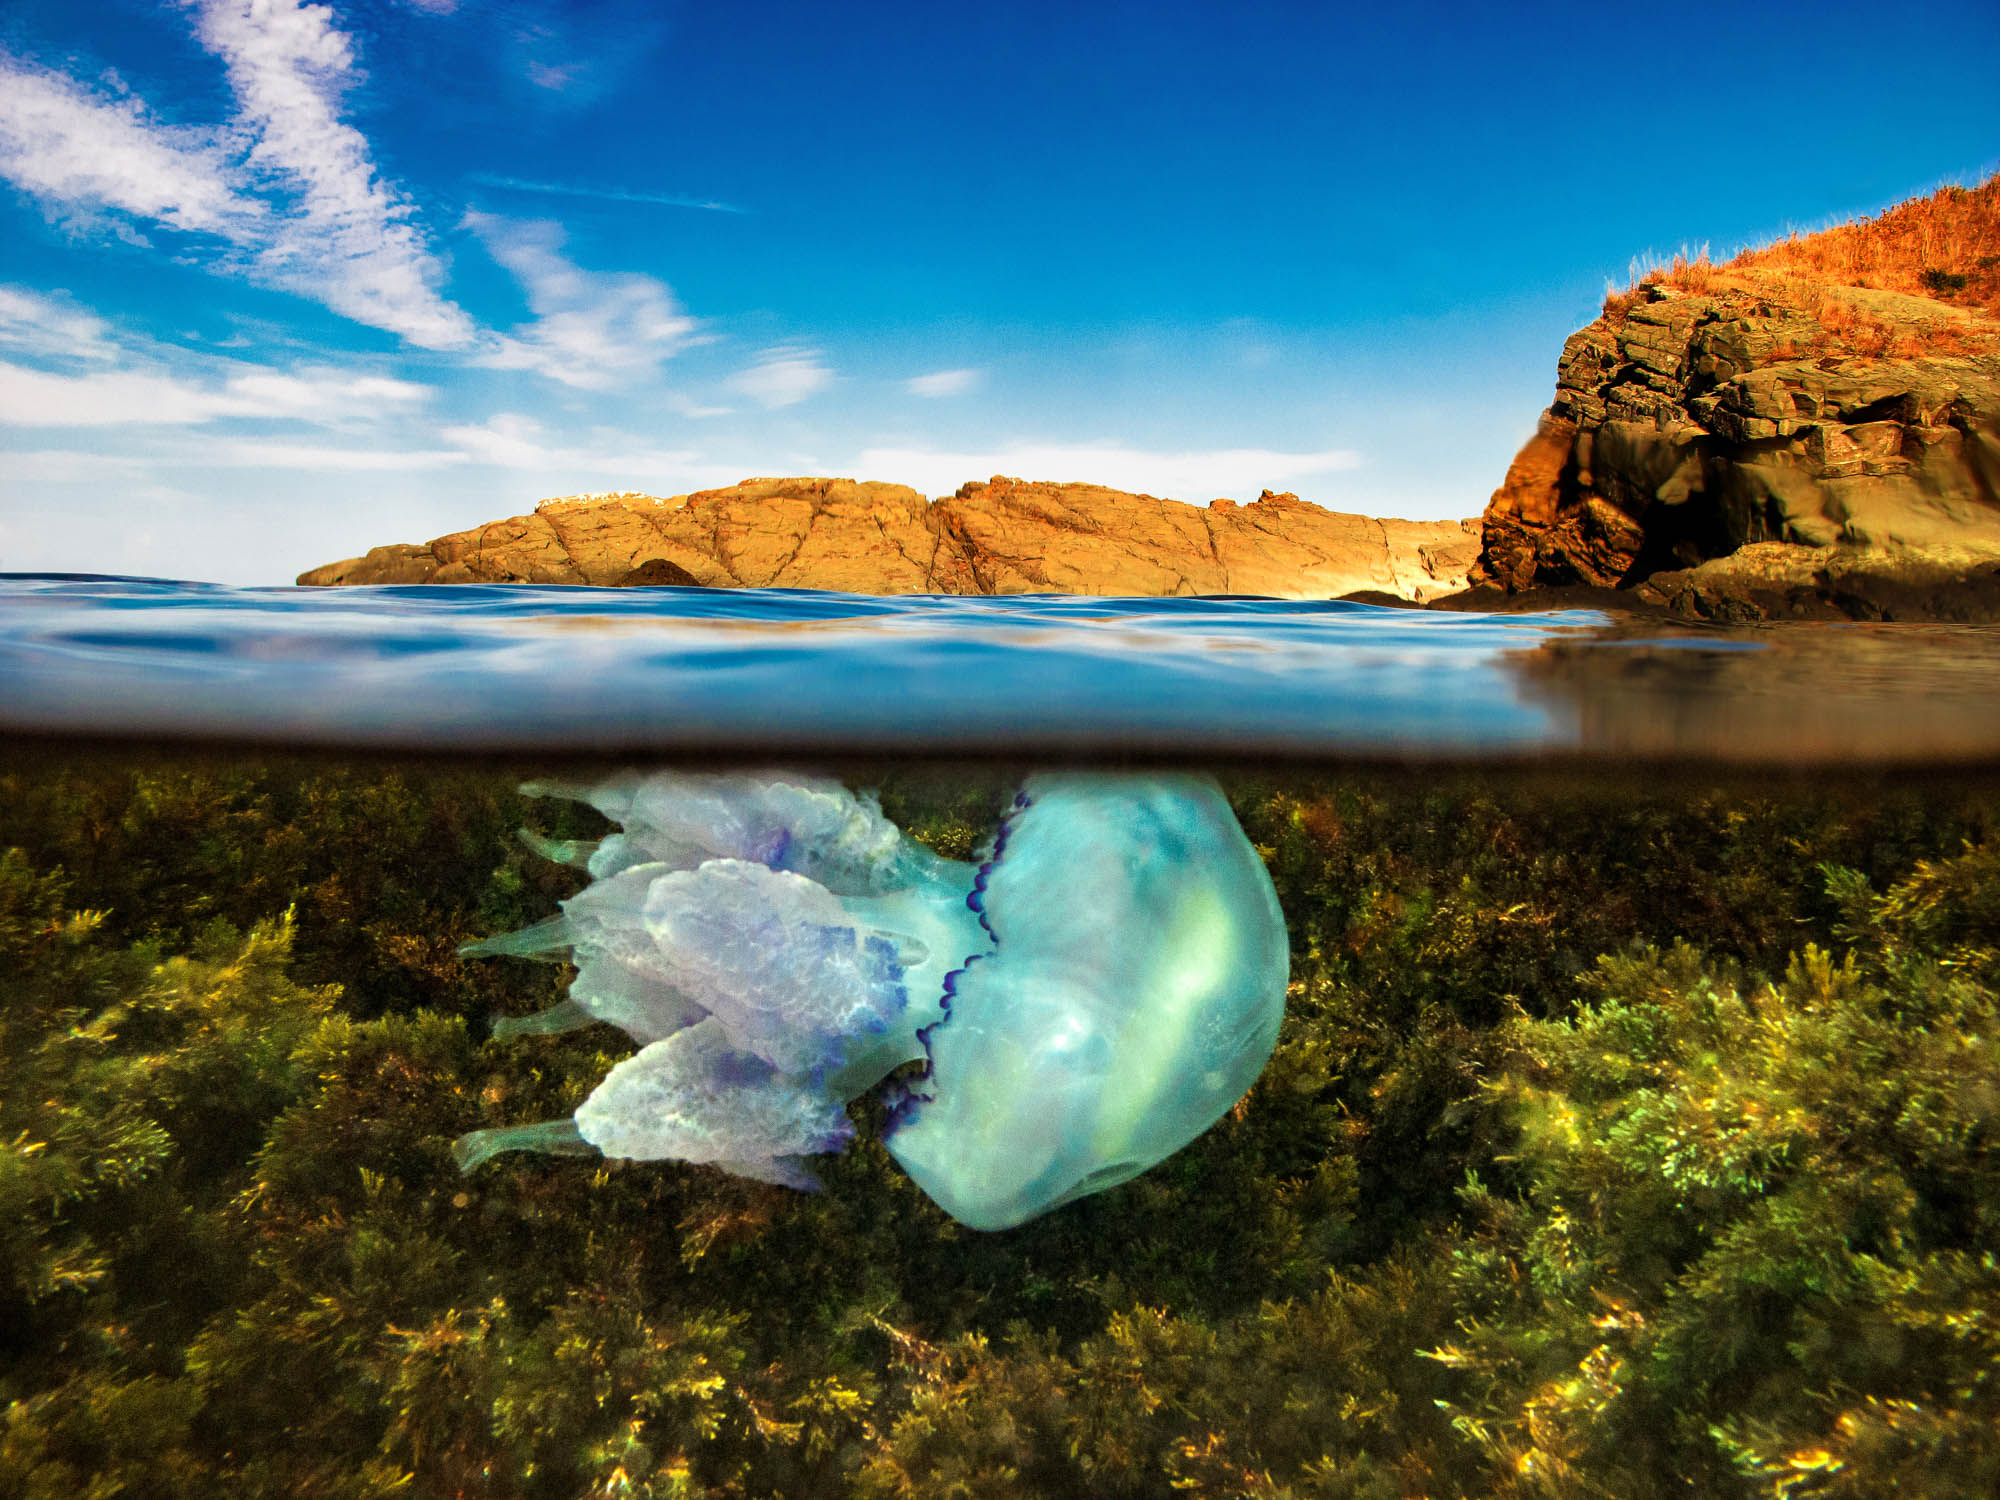 A split level photo of reef with Jellyfish underwater with blue sky and rocks above water.